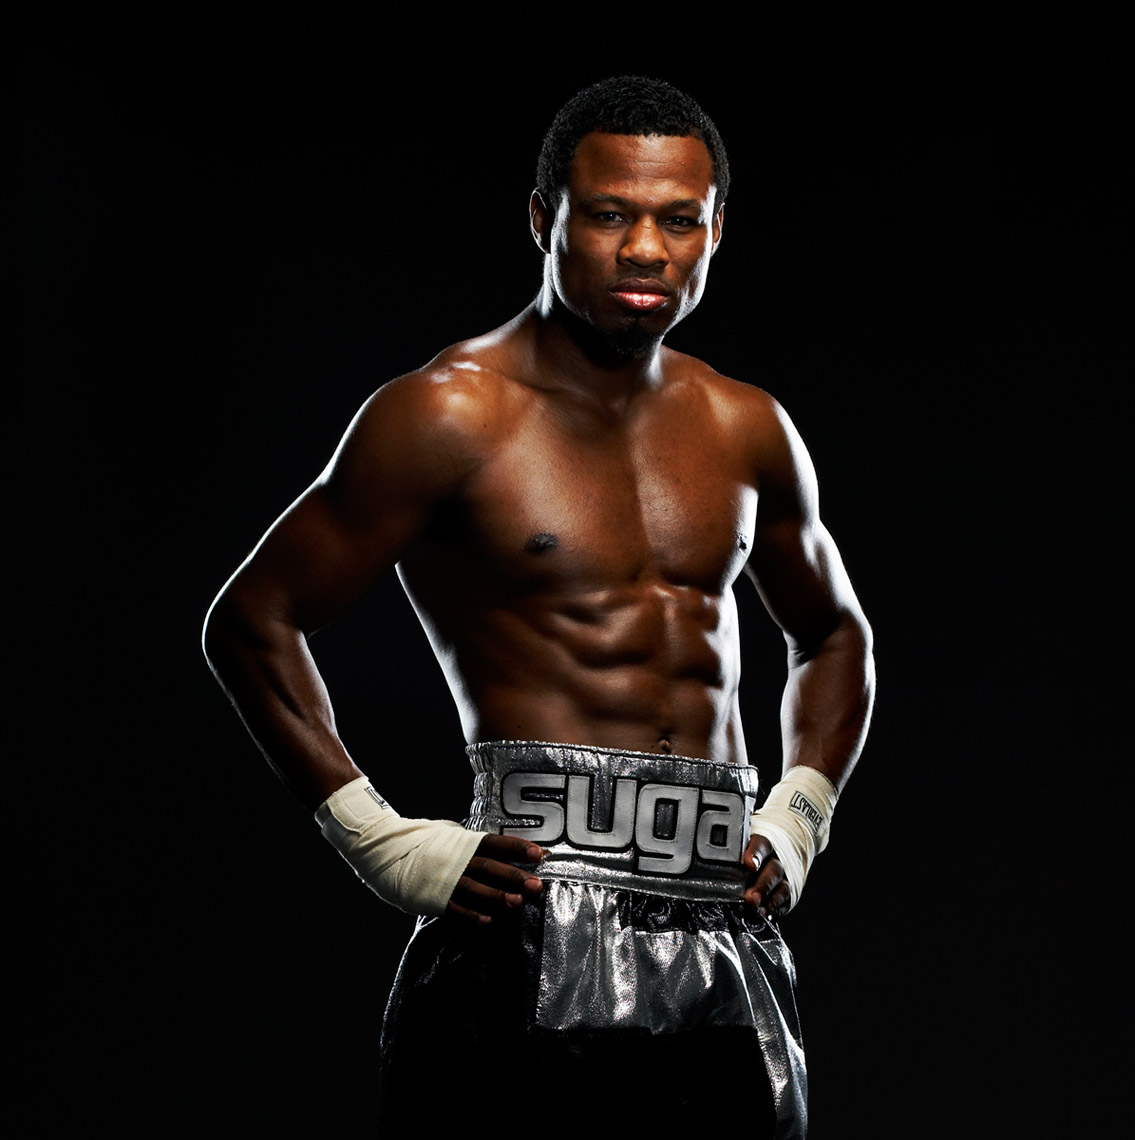 Sugar Shane Mosely for HBO boxing  Photo by Monte Isom